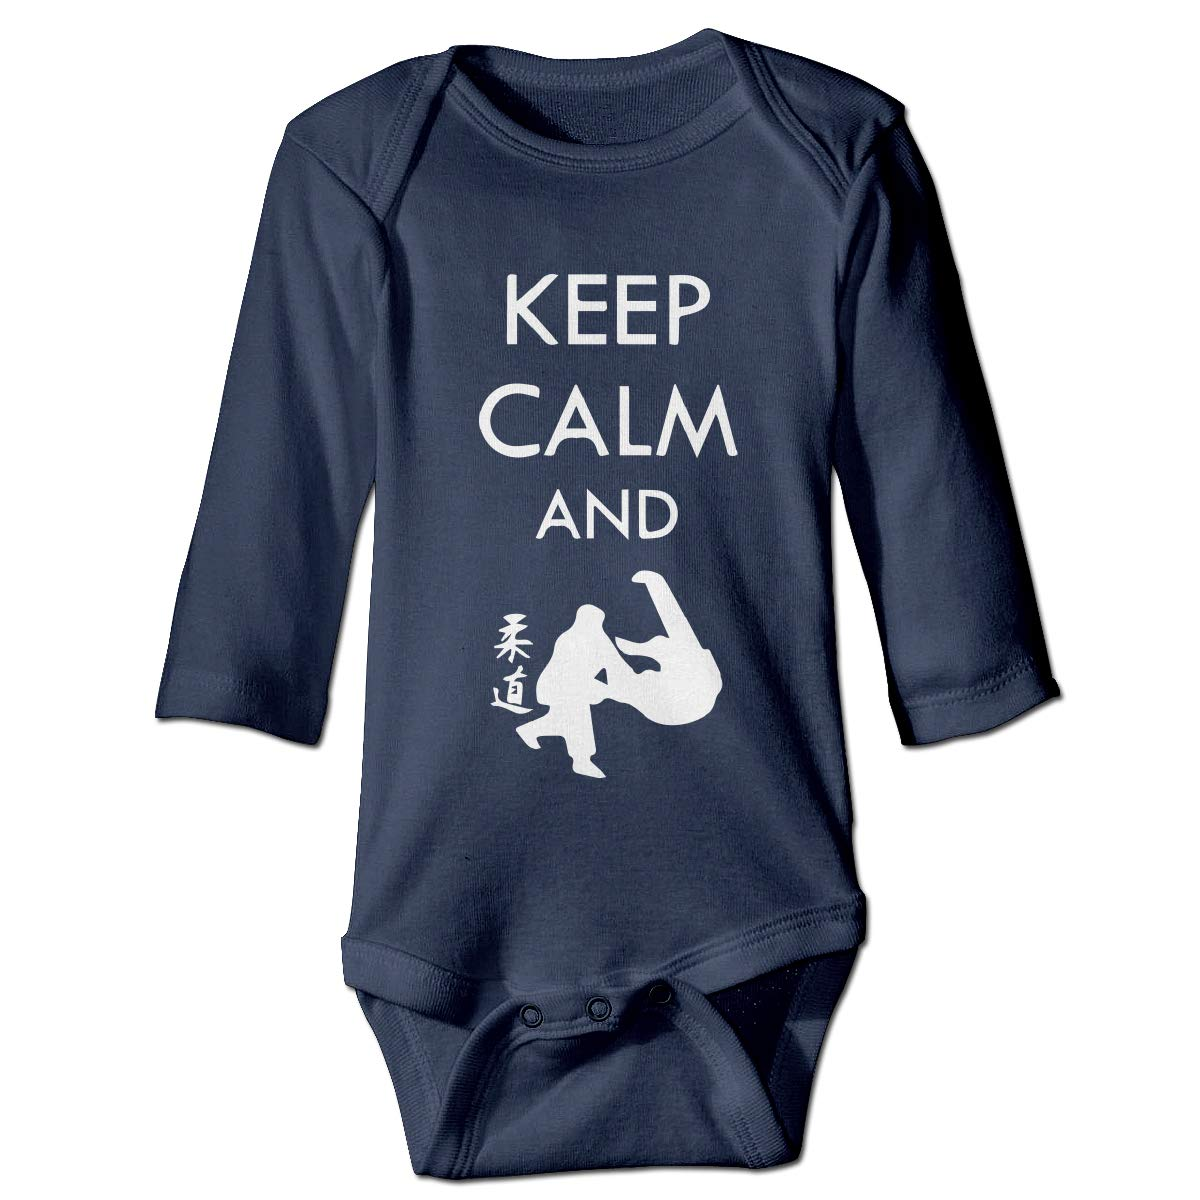 A14UBP Newborn Baby Boys Girls Romper Bodysuit Infant Keep Calm and Fight 1 Long Sleeve Funny Romper Bodysuit